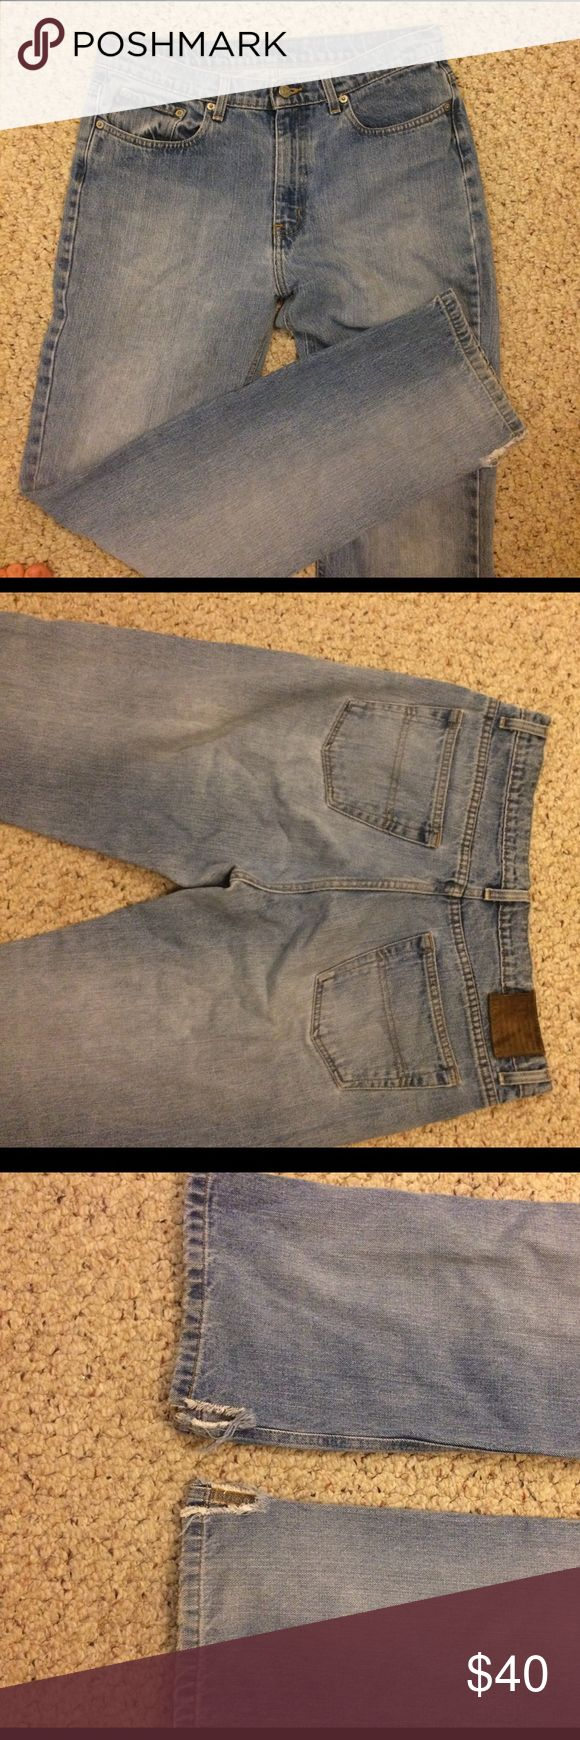 Vintage high-rise jeans Size 12x33 Polo Ralph Lauren jeans. High rise. Light wash. No holes. Cuts on inside of bottom of hem. Great as jeans or could possibly look great as cut off shorts! Polo by Ralph Lauren Jeans Straight Leg